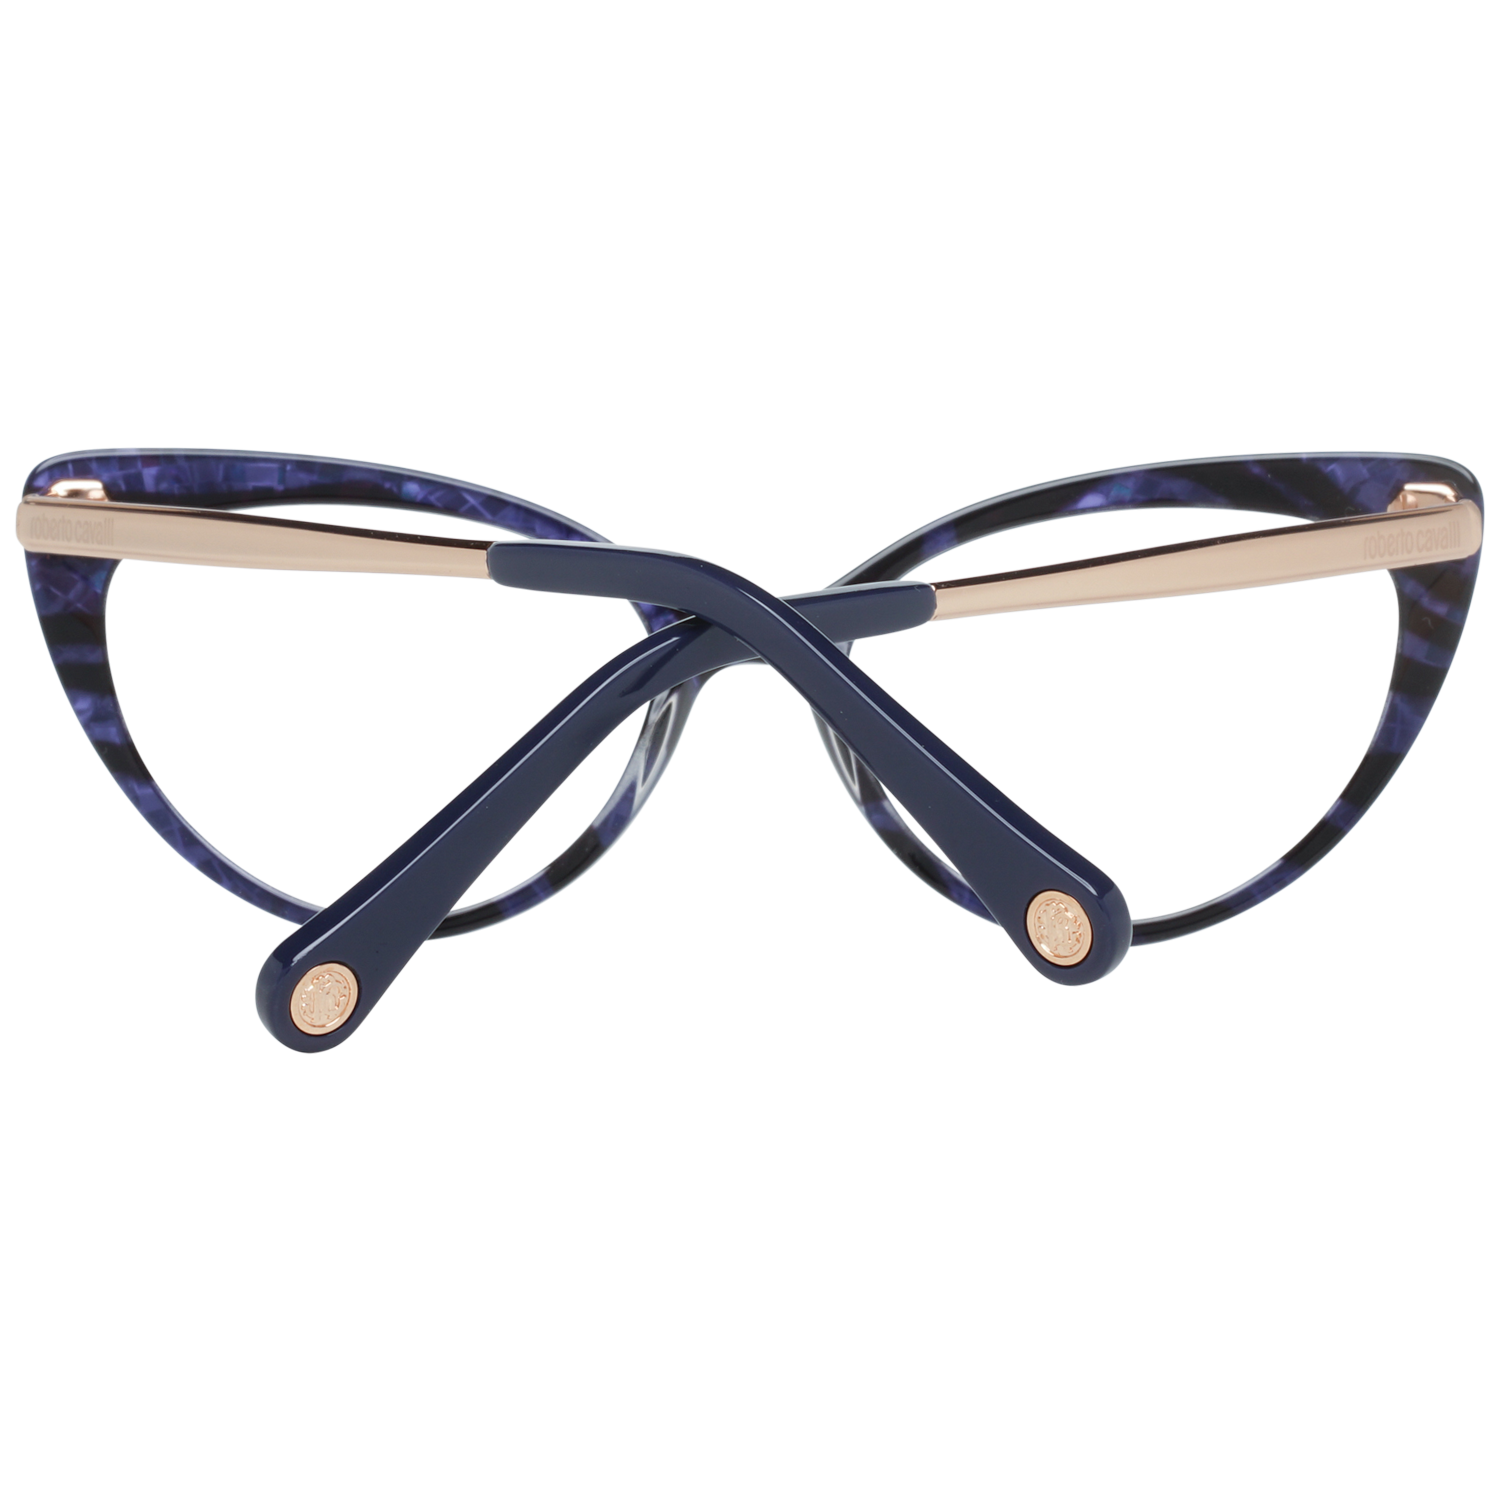 Roberto Cavalli Optical Frame RC5109 092 52 Women Blue